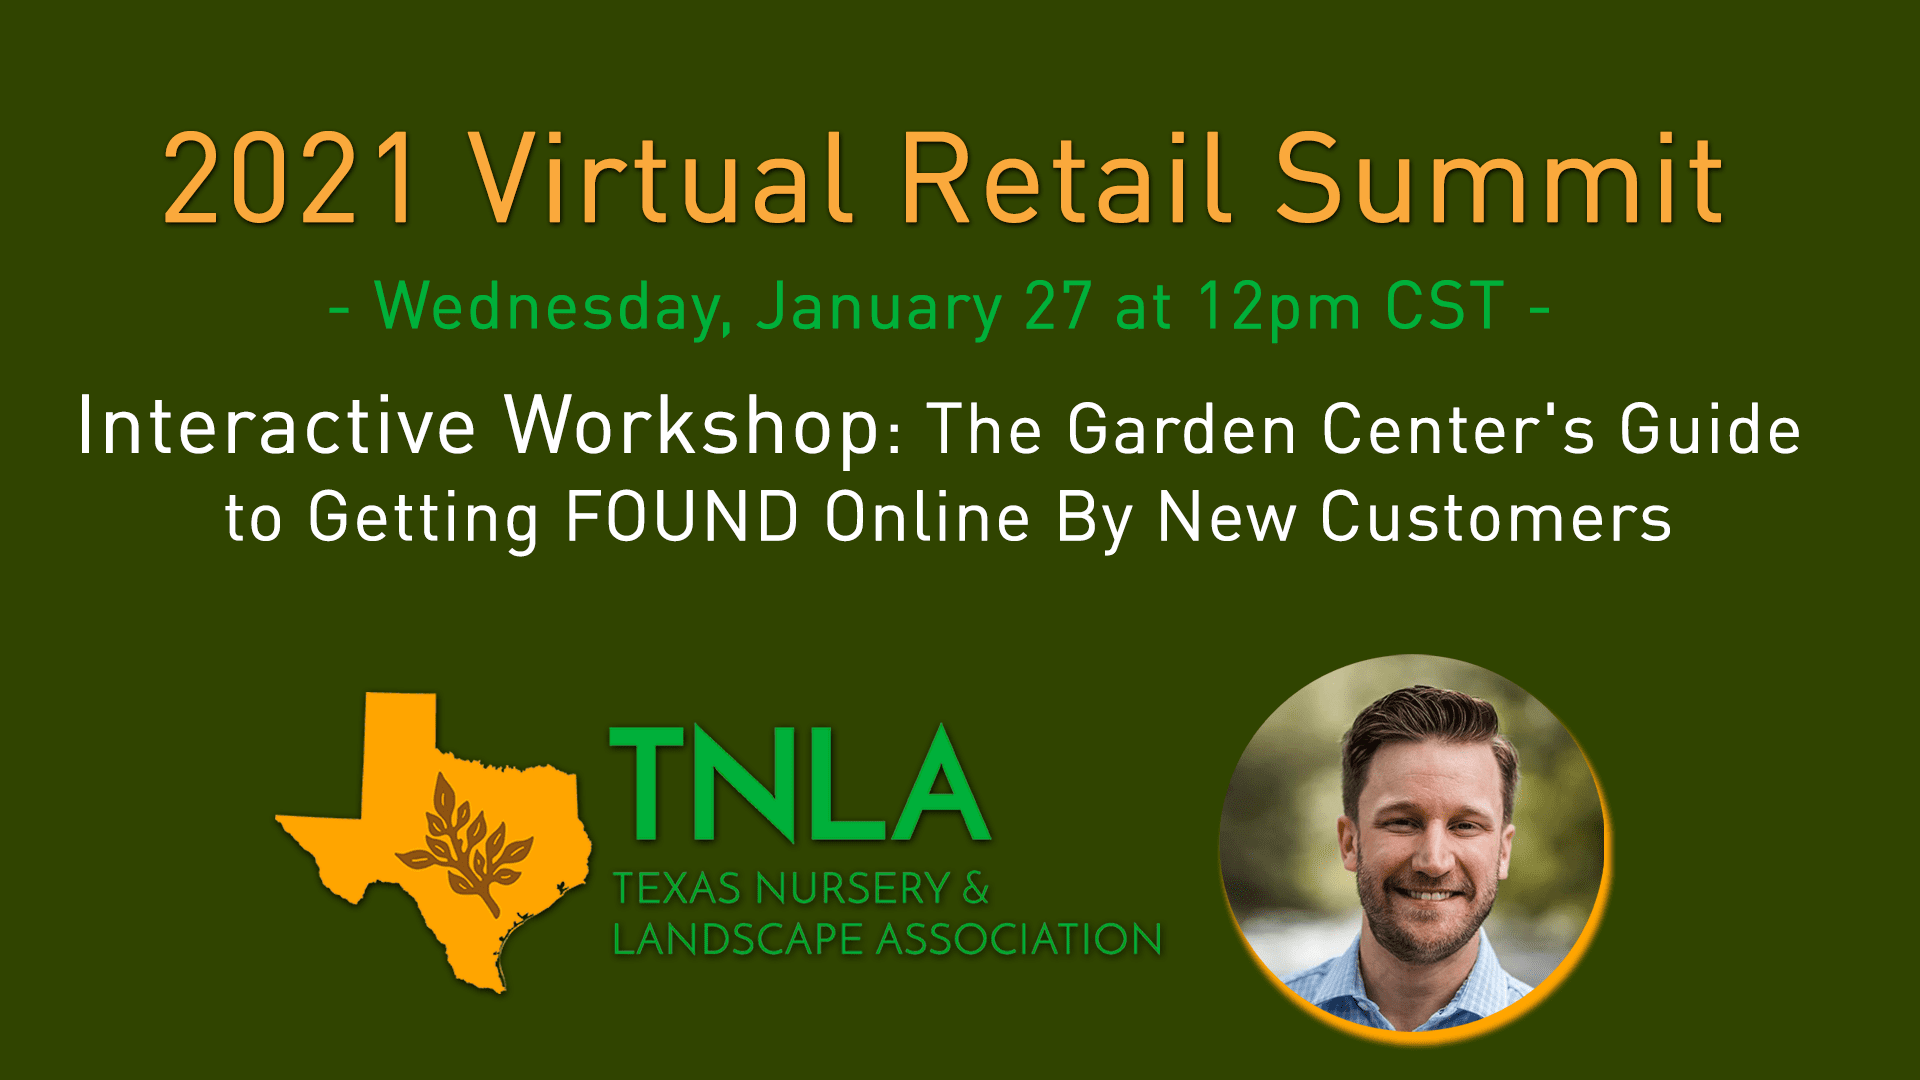 TNLA 2021 Virtual Retail Summit